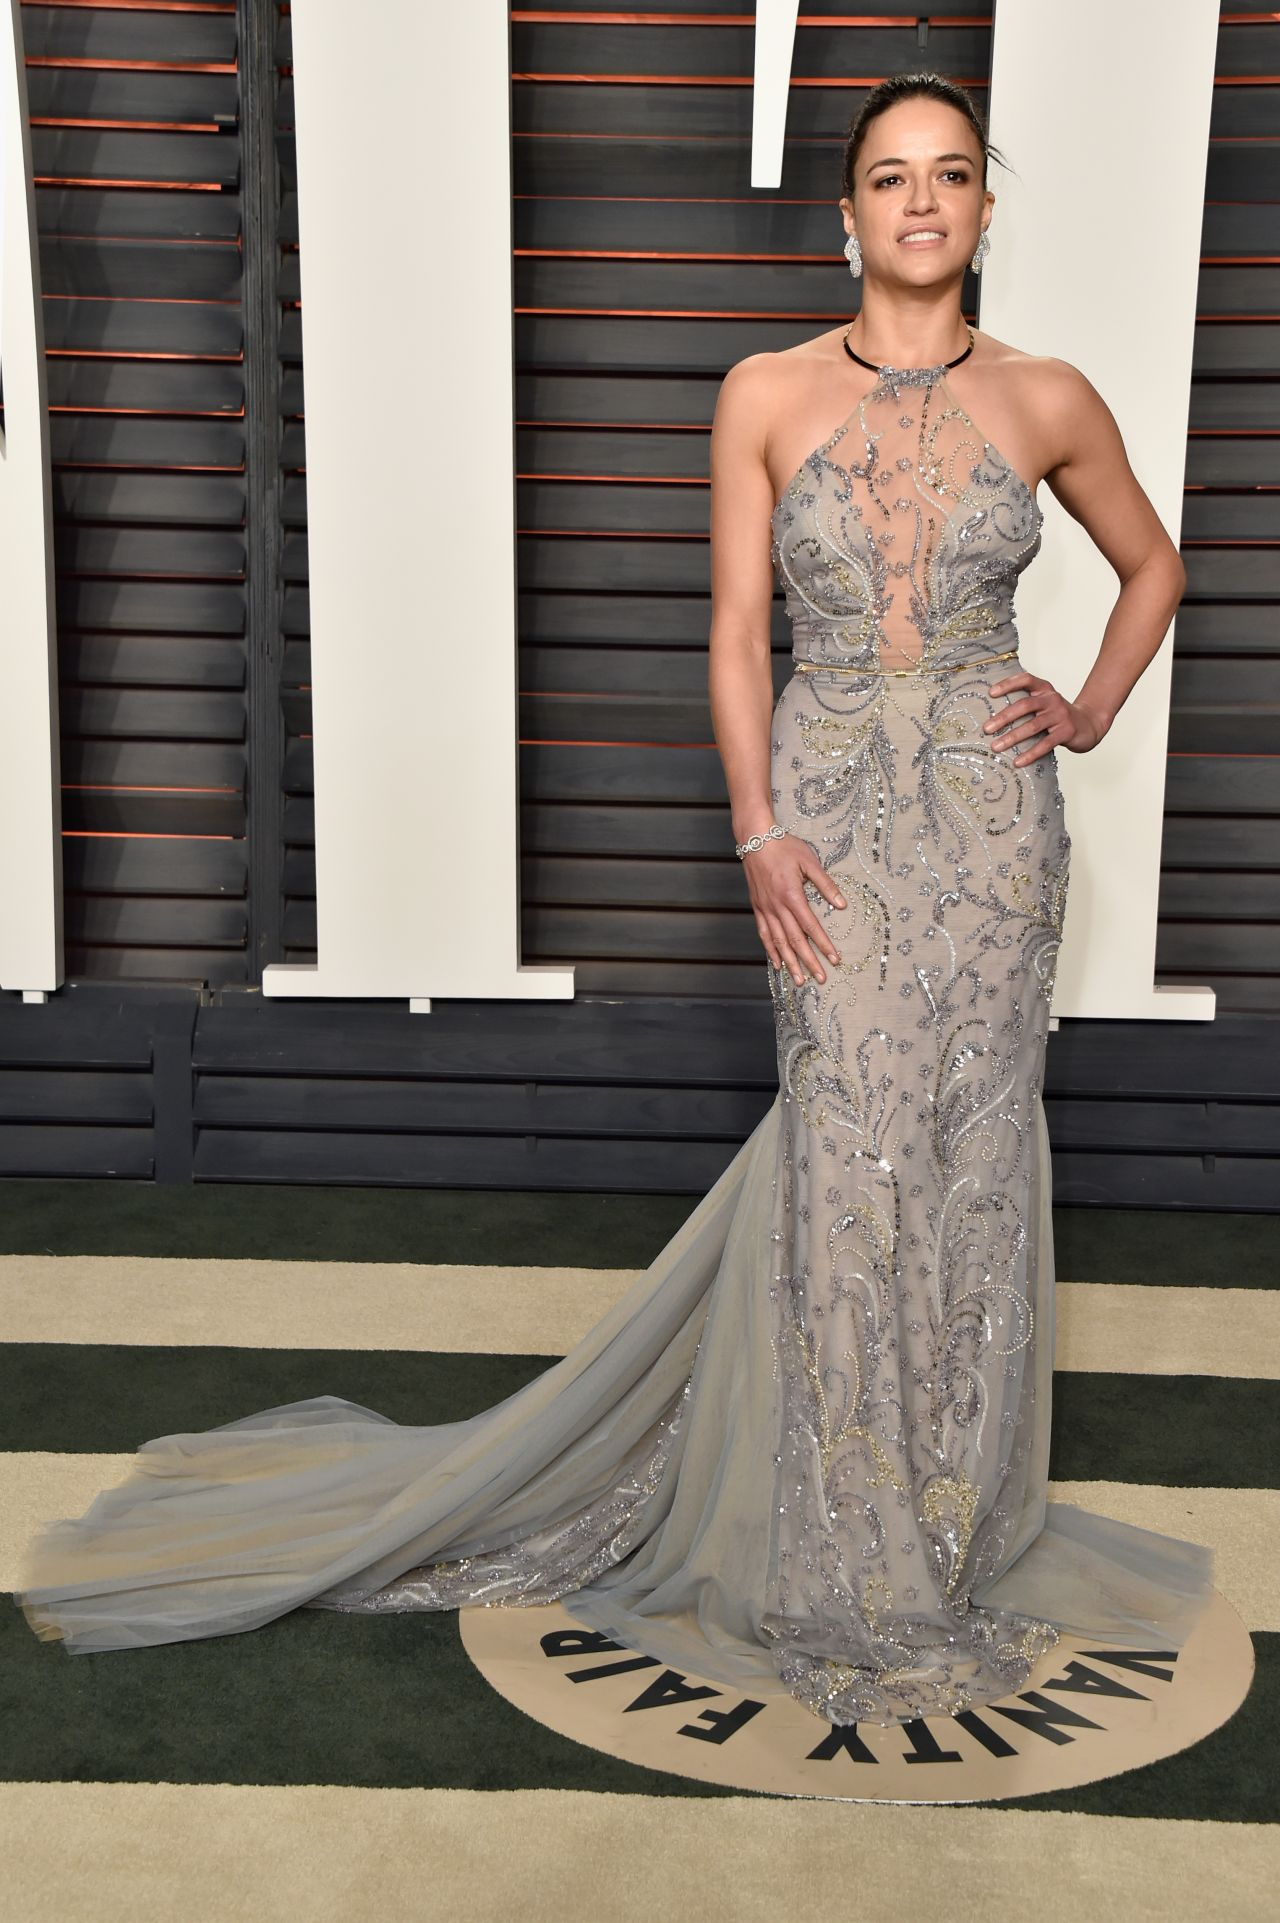 michelle-rodriguez-2016-vanity-fair-oscar-party-in-beverly-hills-ca-4